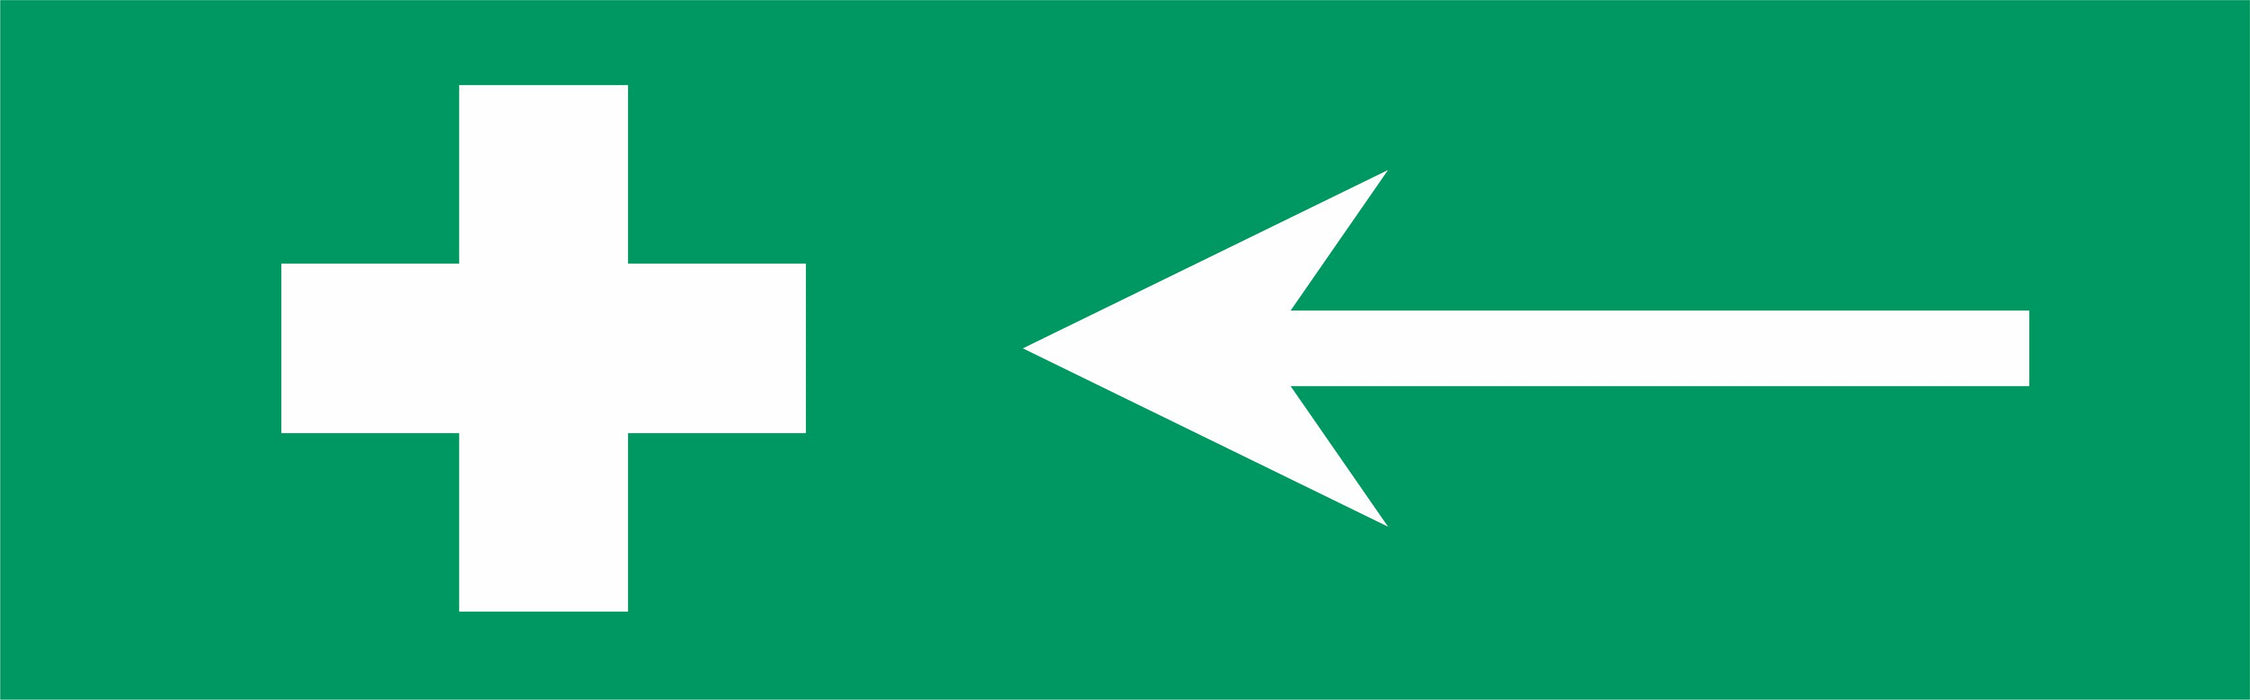 First aid symbol - arrow left